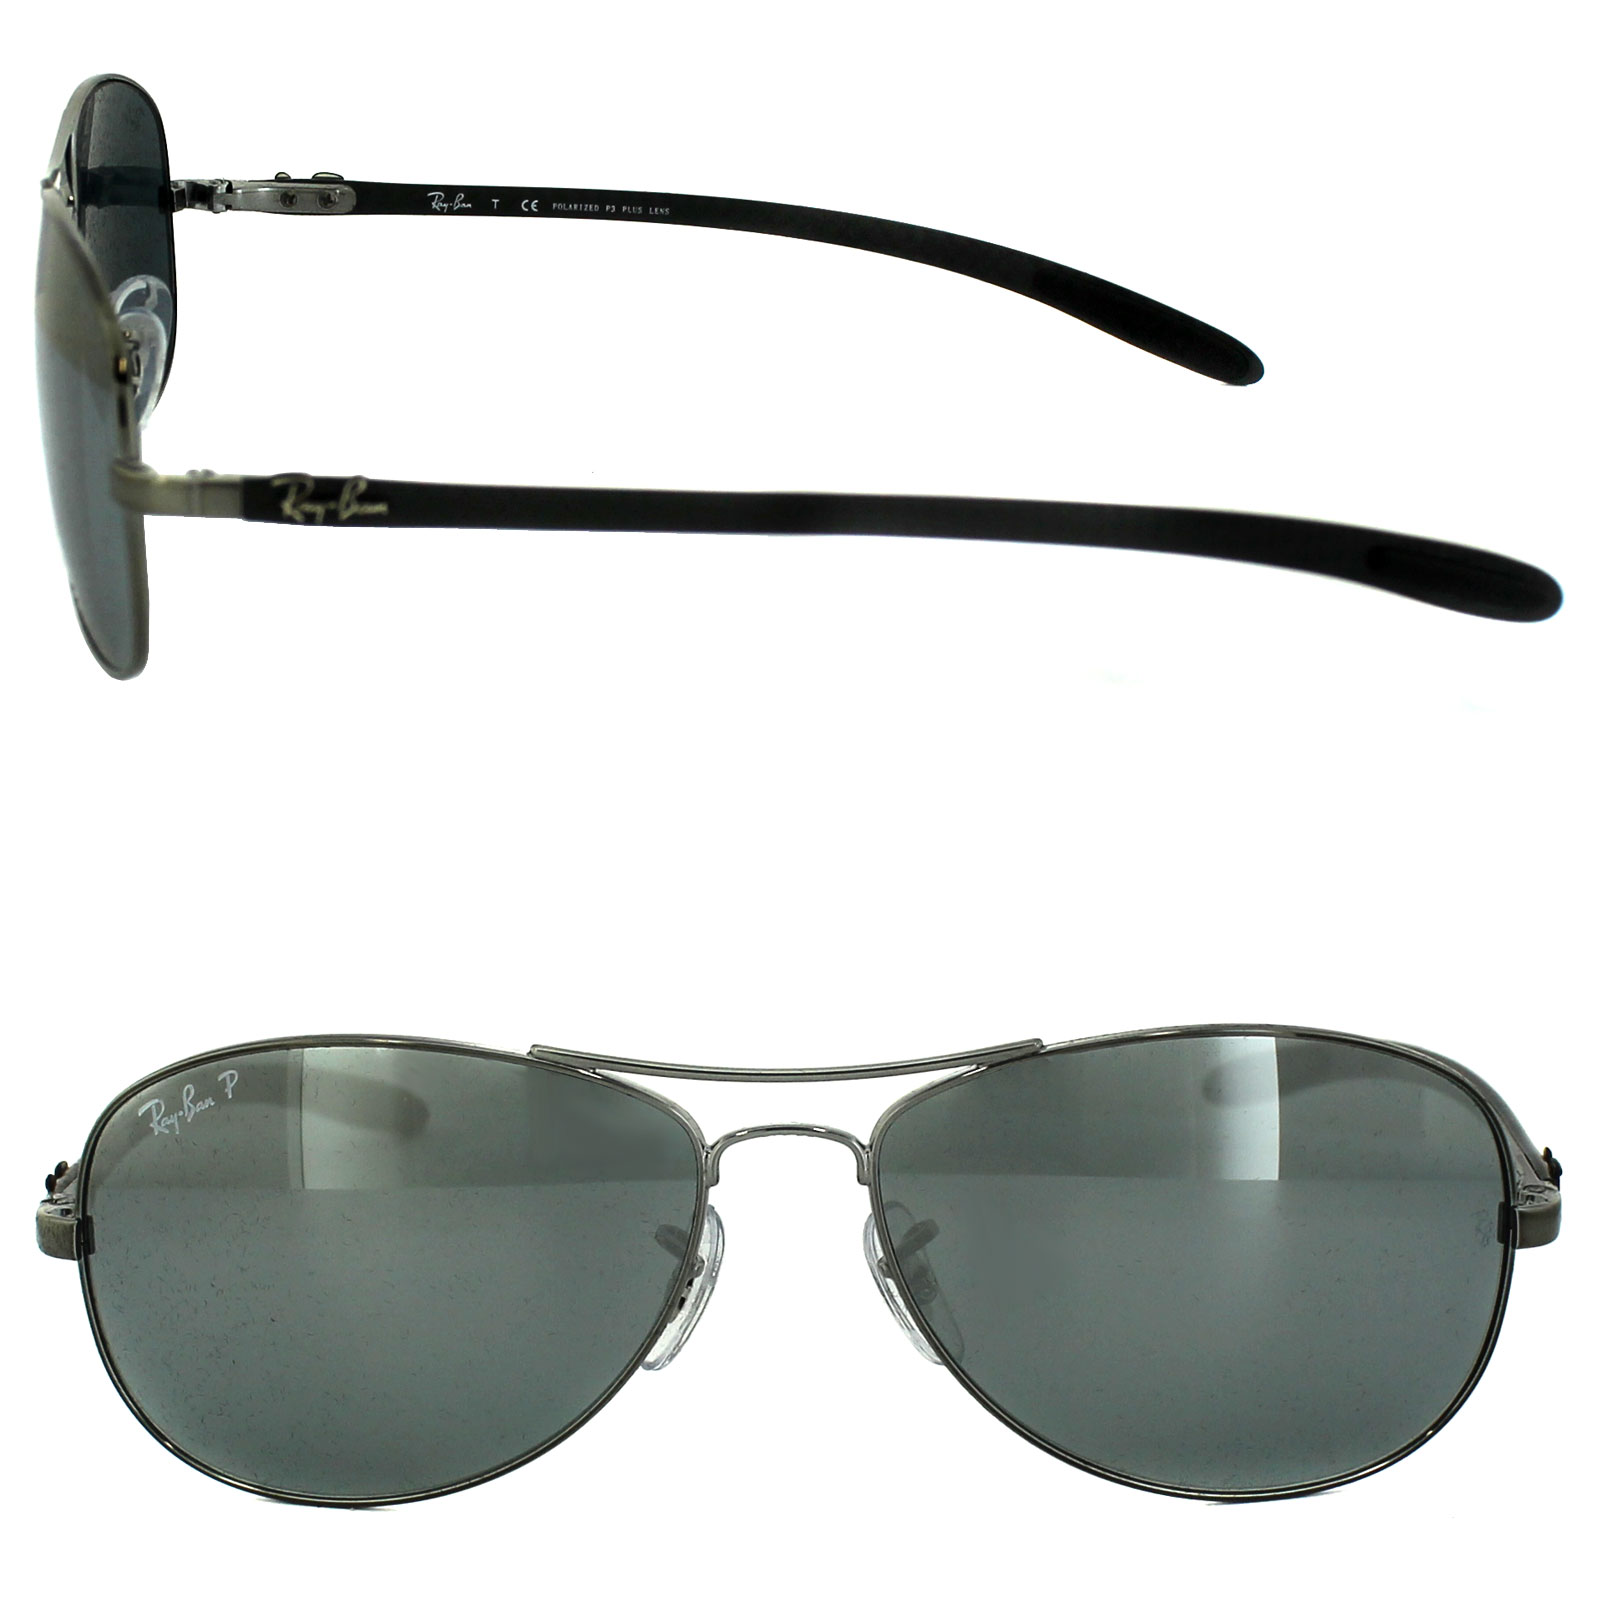 a9c39d45545 Buy Ray Ban 8301 Polarized